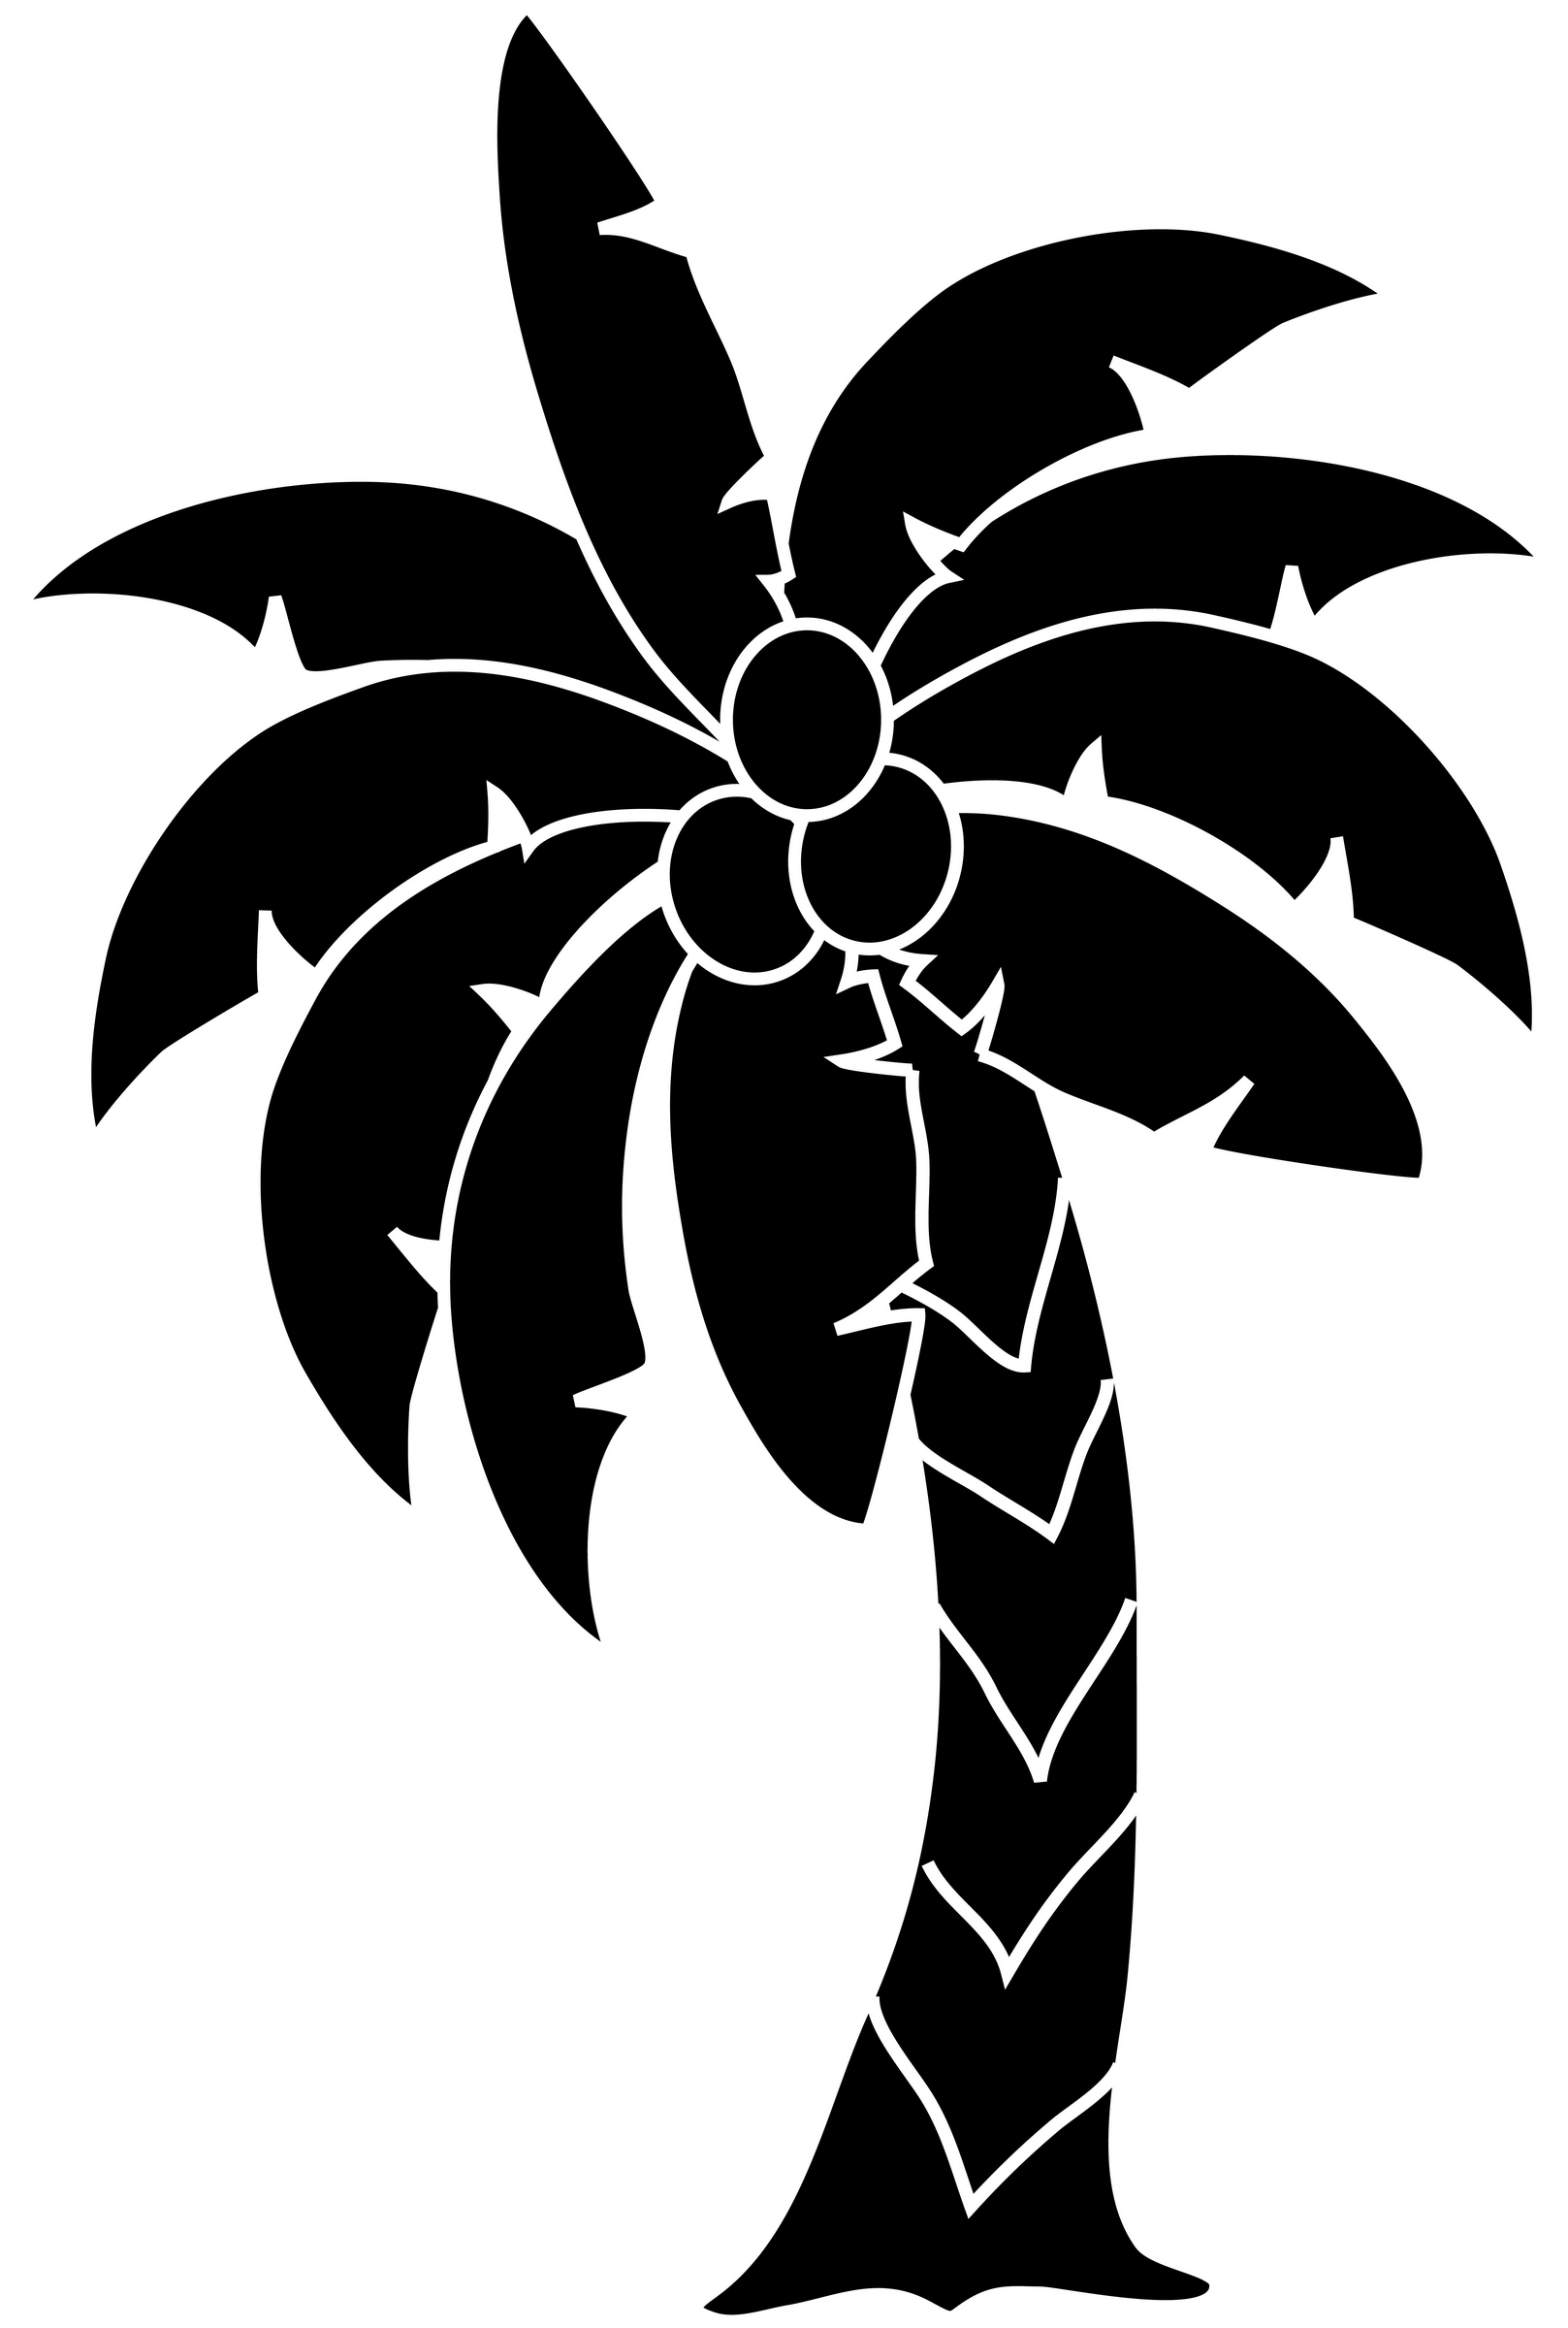 hight resolution of tropical palm trees clipart free clip art images image 7